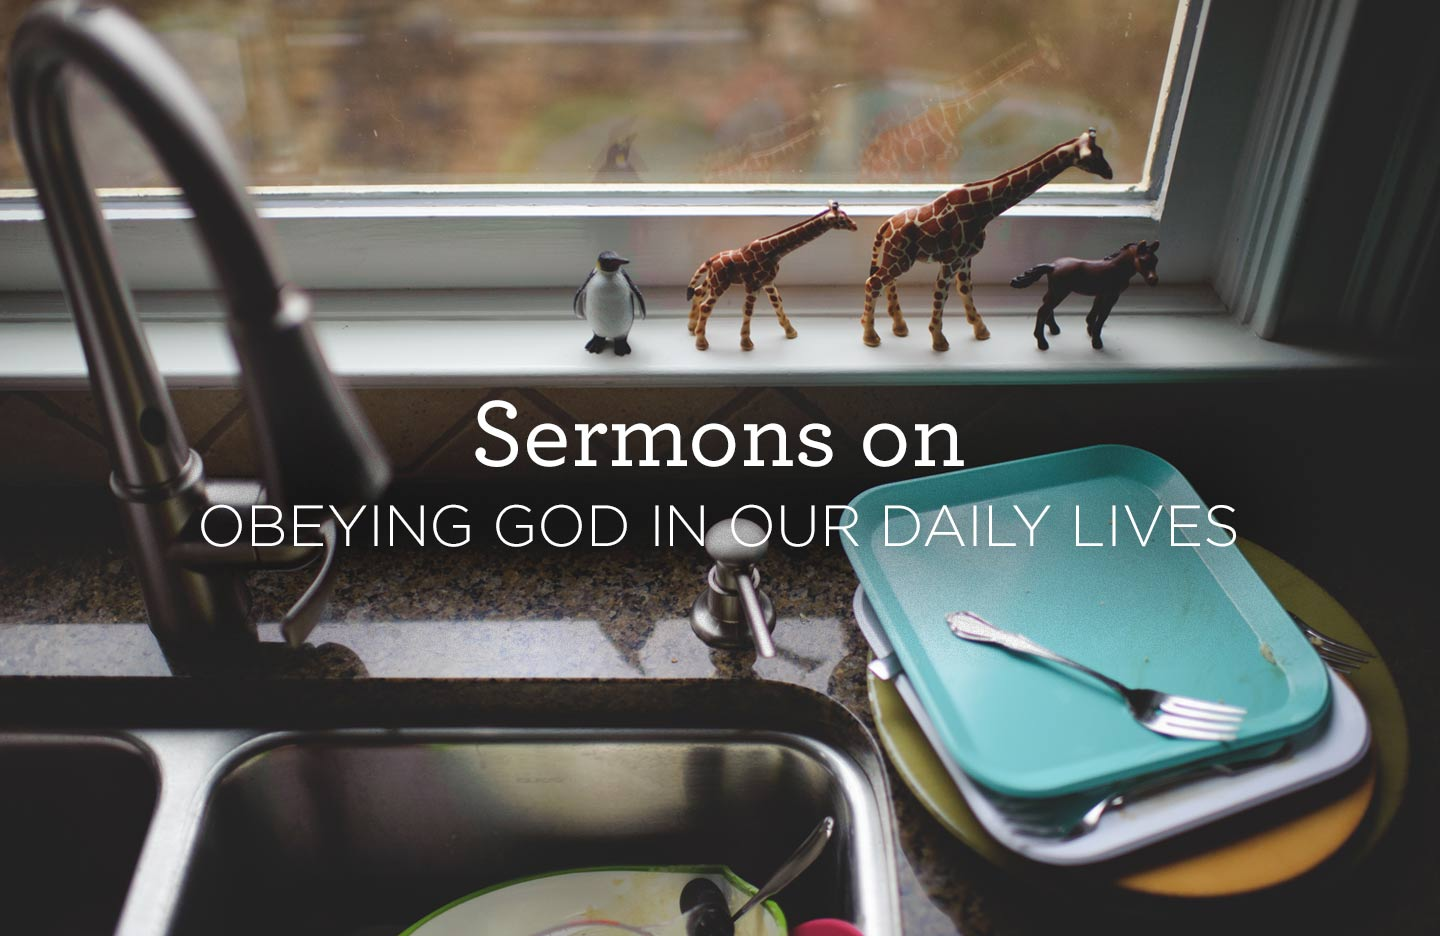 thumbnail image for Sermons on Obeying God in Our Daily Lives